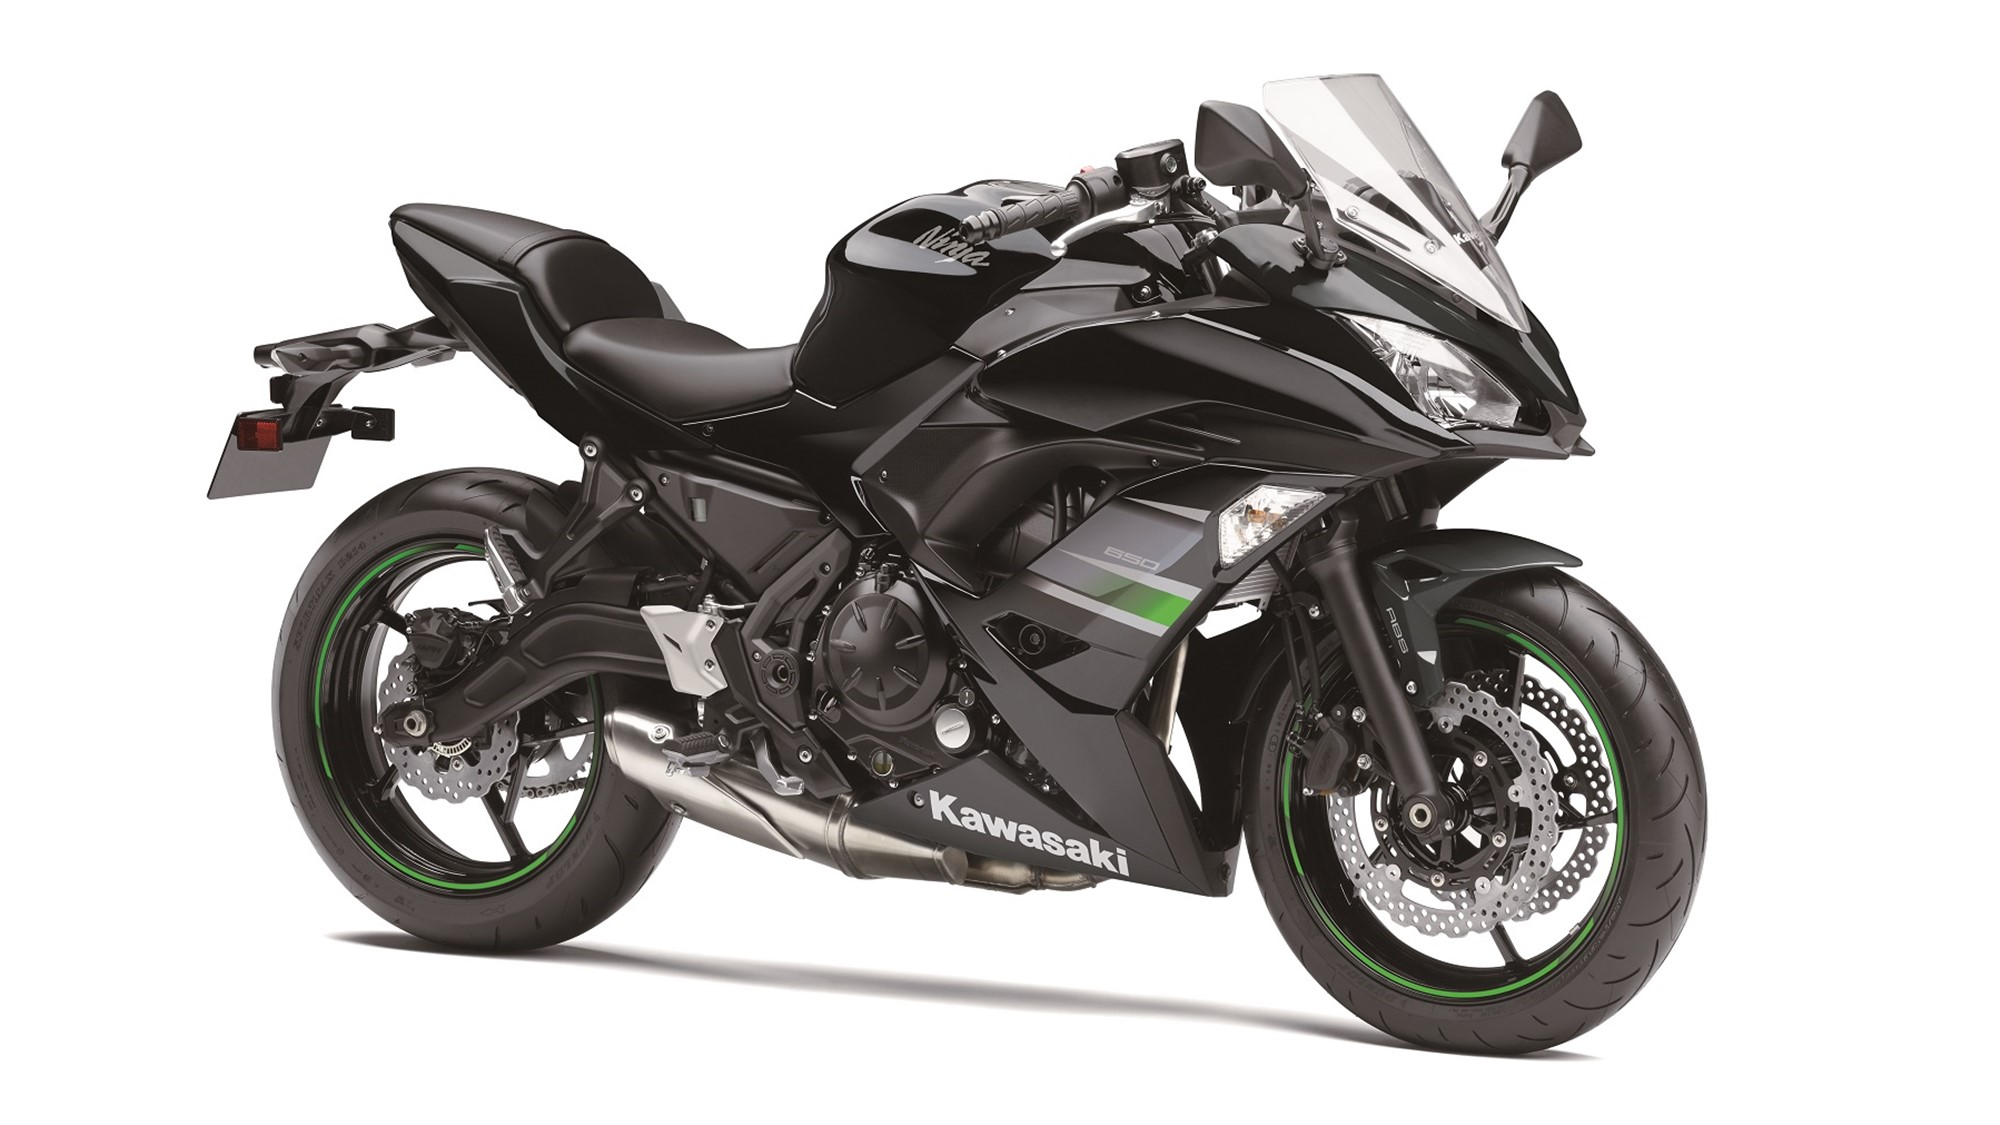 2019 Kawasaki Ninja 650 bookings begin in India